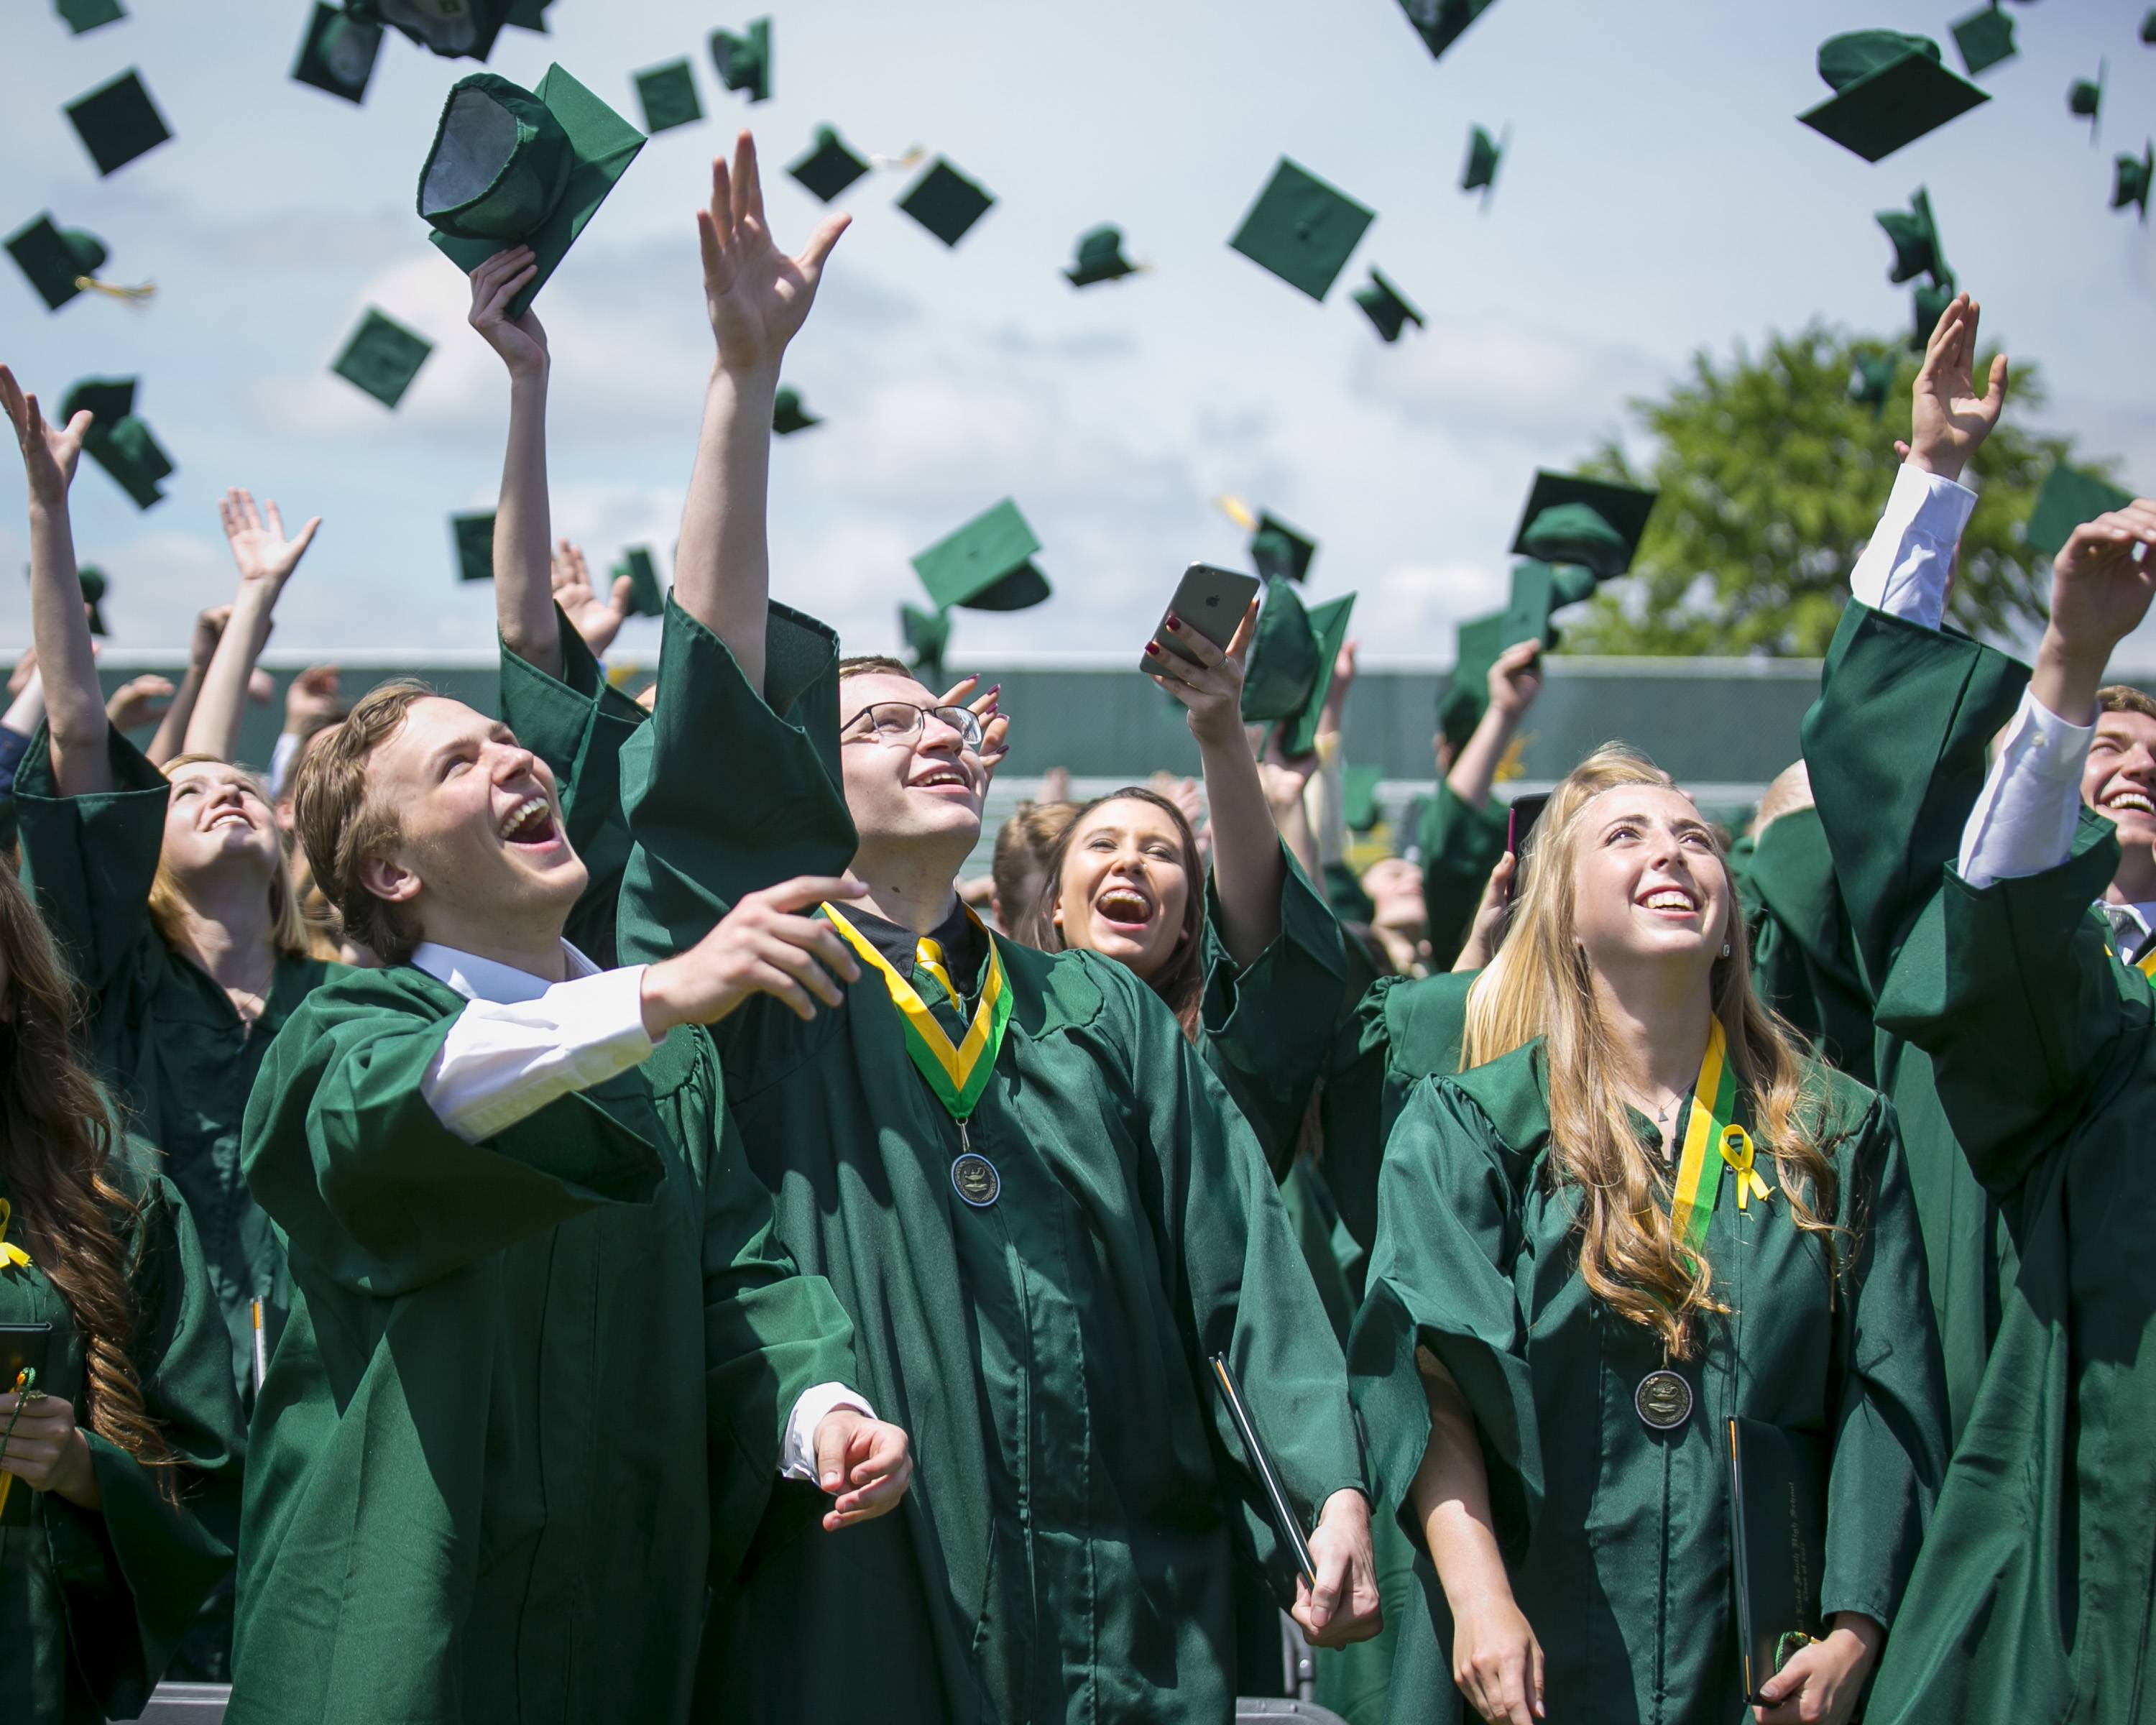 Kyle Babeti (left), Anthony Baietto, and Brittany Baker smile while watching their thrown mortarboards in the air during Crystal Lake South High School's 2017 Commencement Ceremony at Crystal Lake South High School Saturday, May 27, 2017.